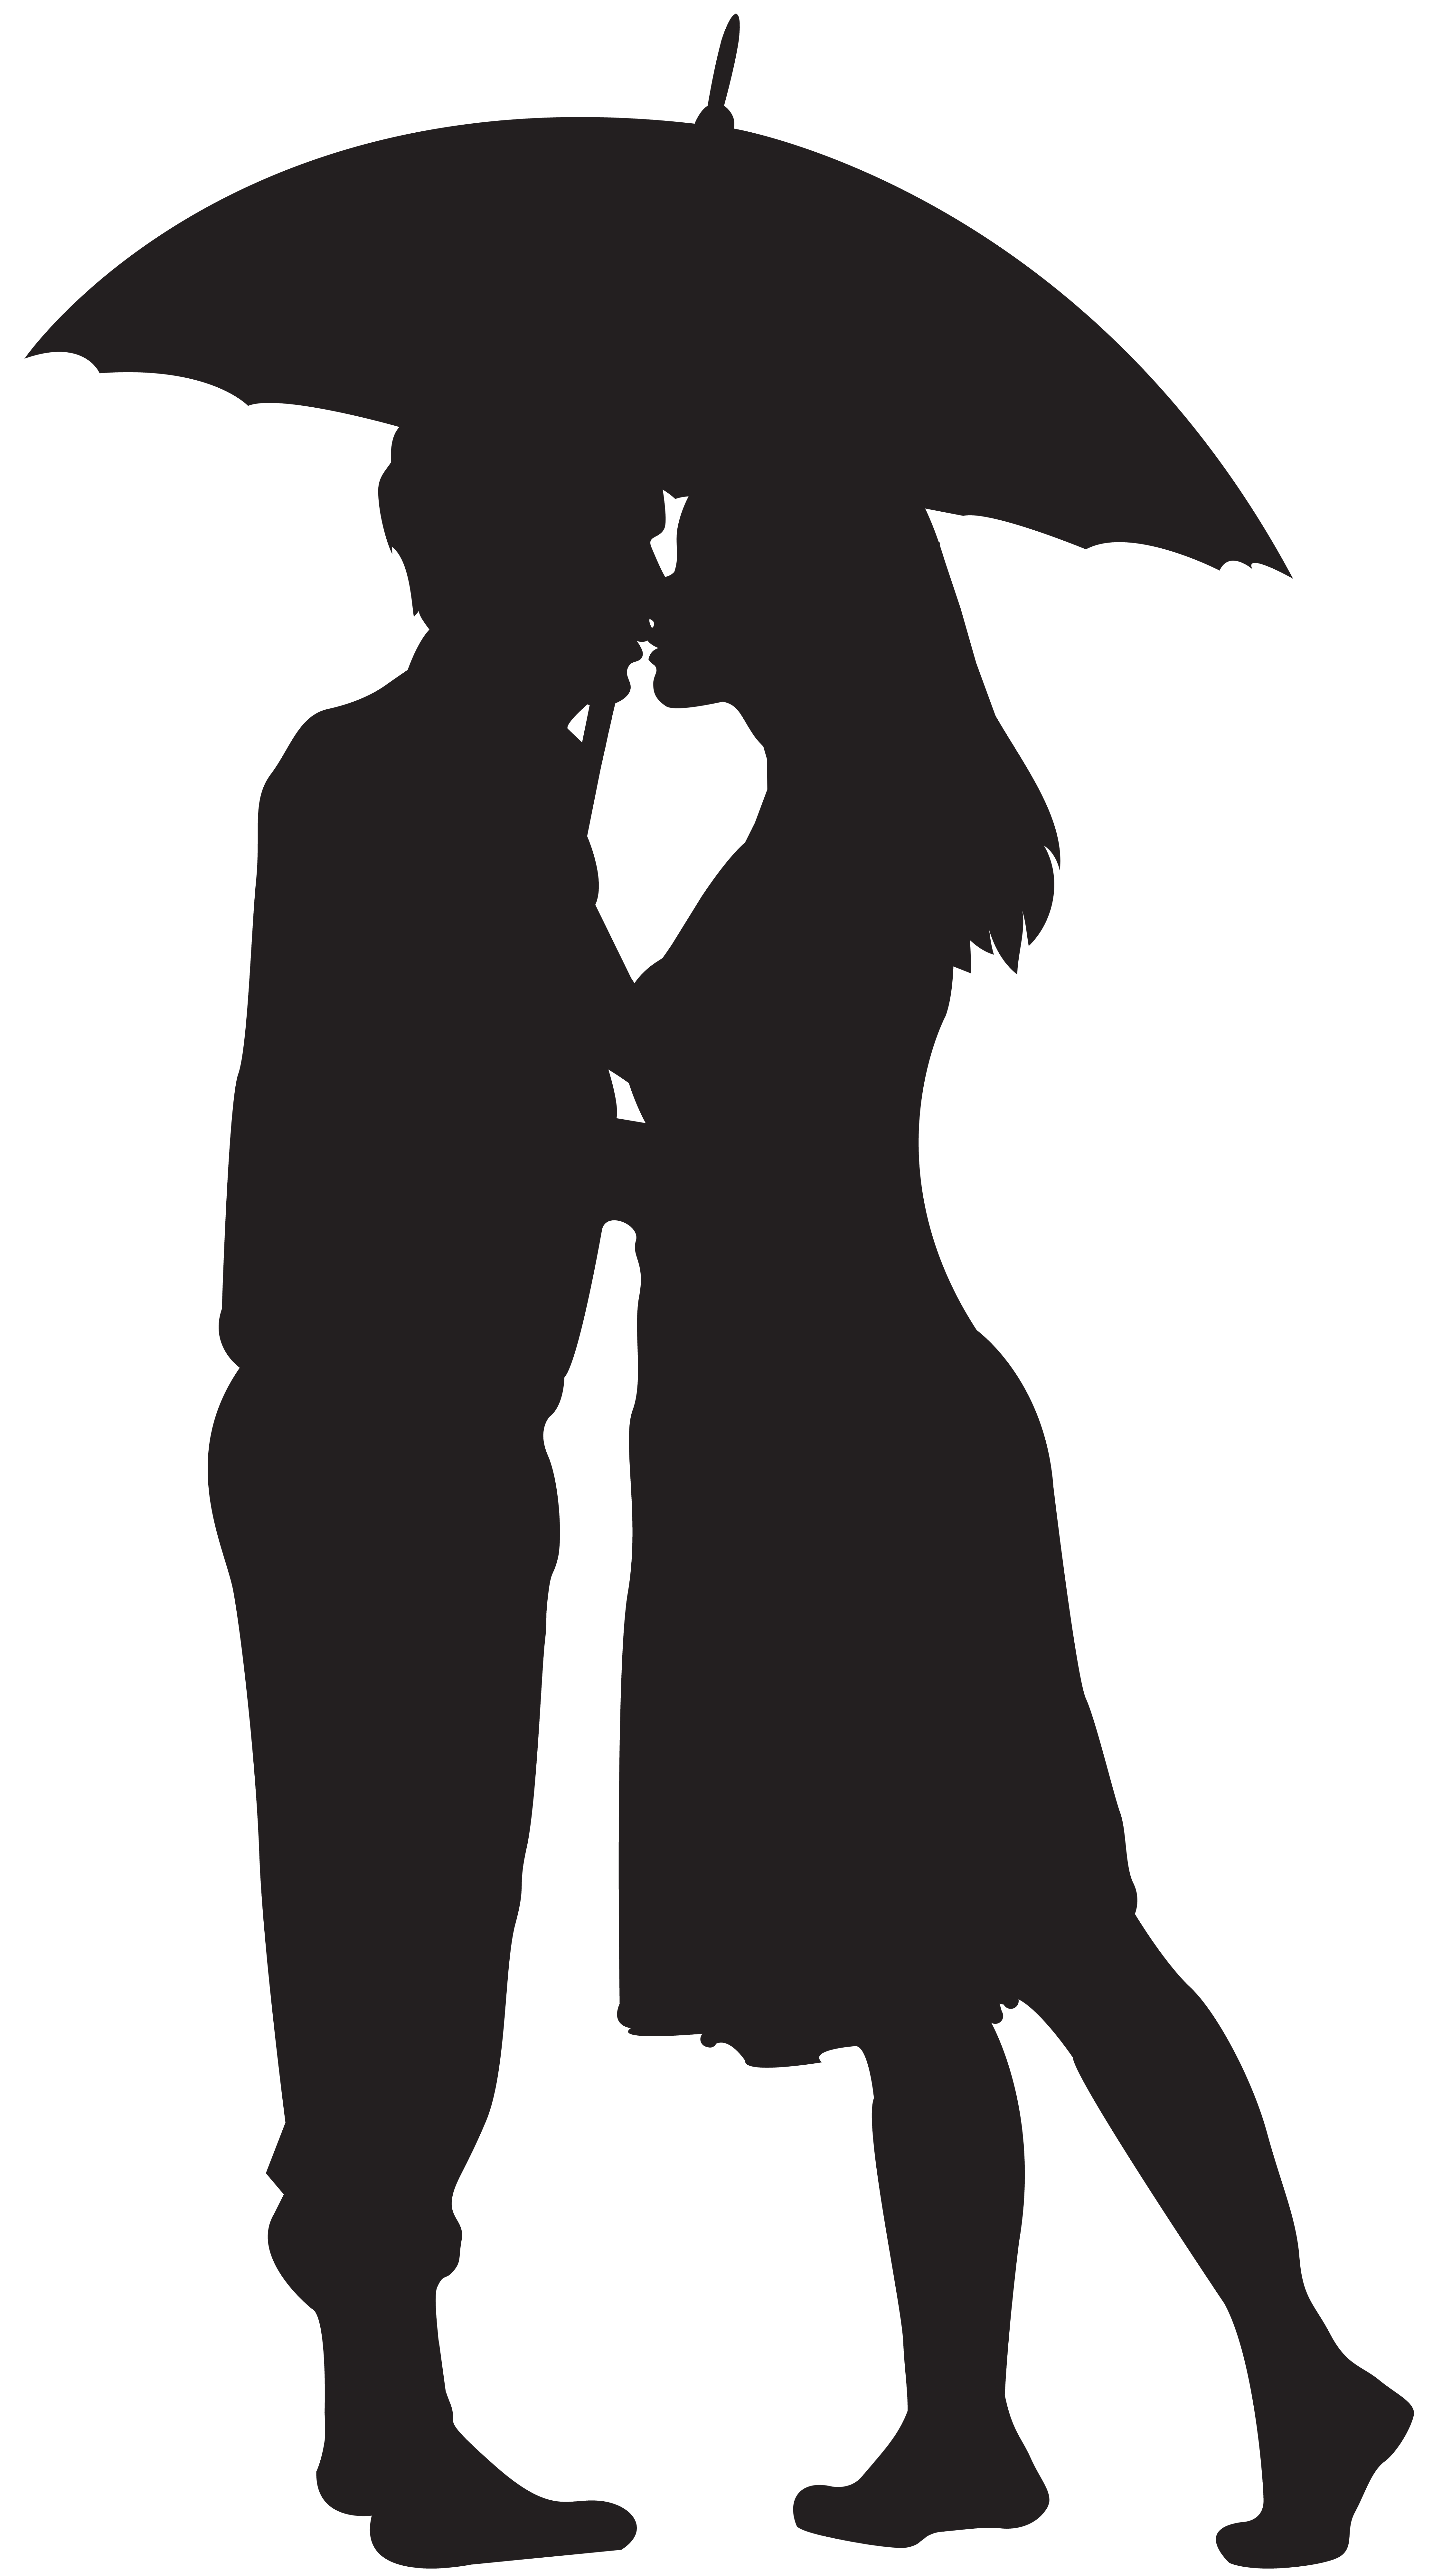 Pregnancy clipart couple pregnant african american.